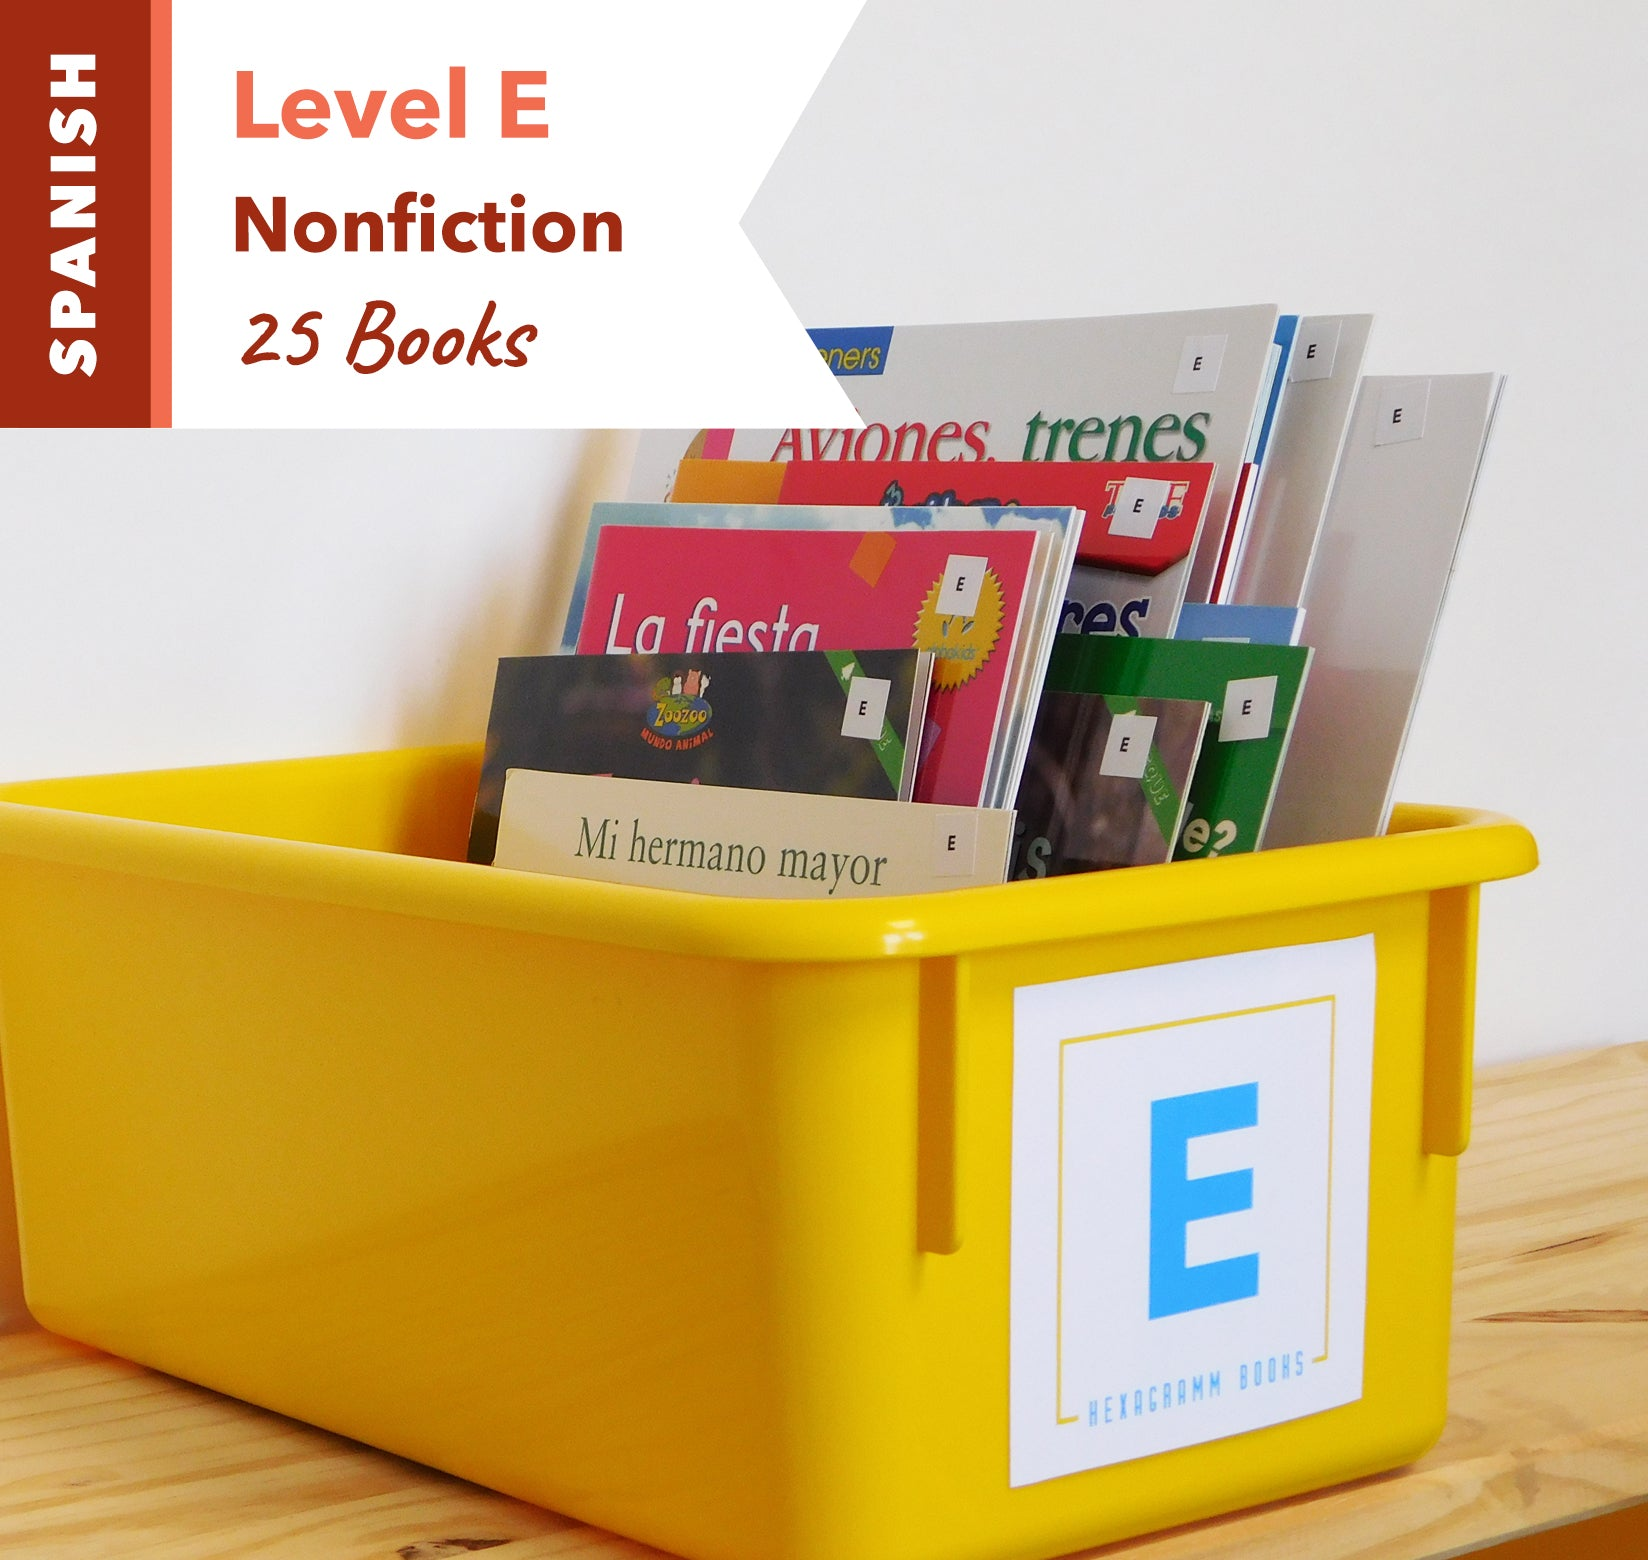 Level E, Bundle of 25 (Nonfiction) Spanish